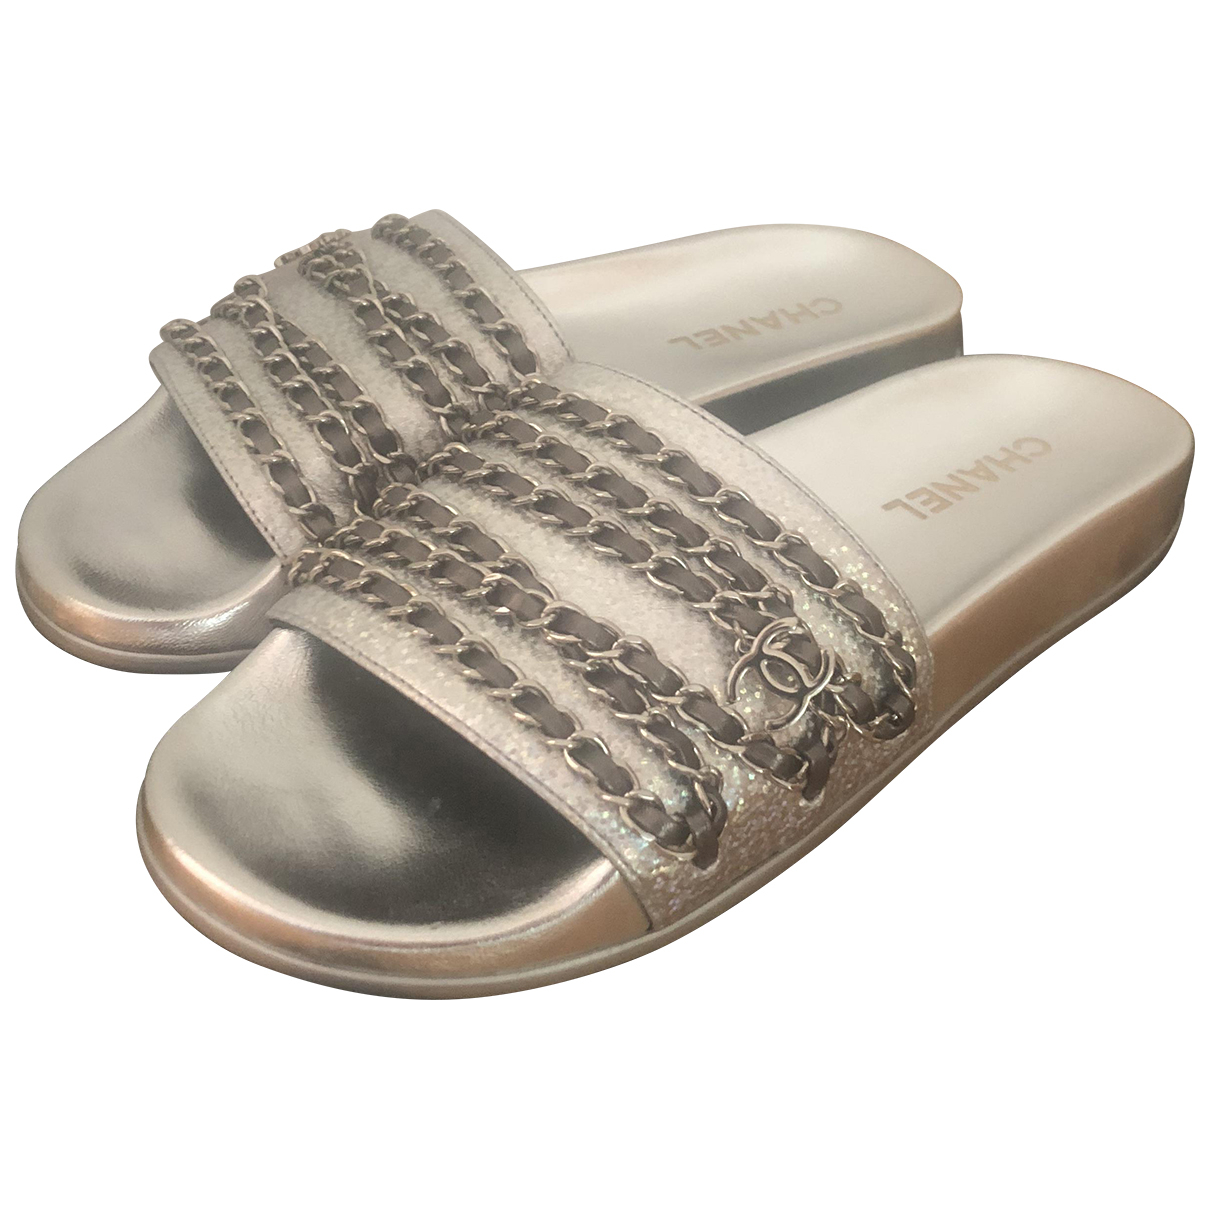 Chanel \N Silver Leather Mules & Clogs for Women 40 EU